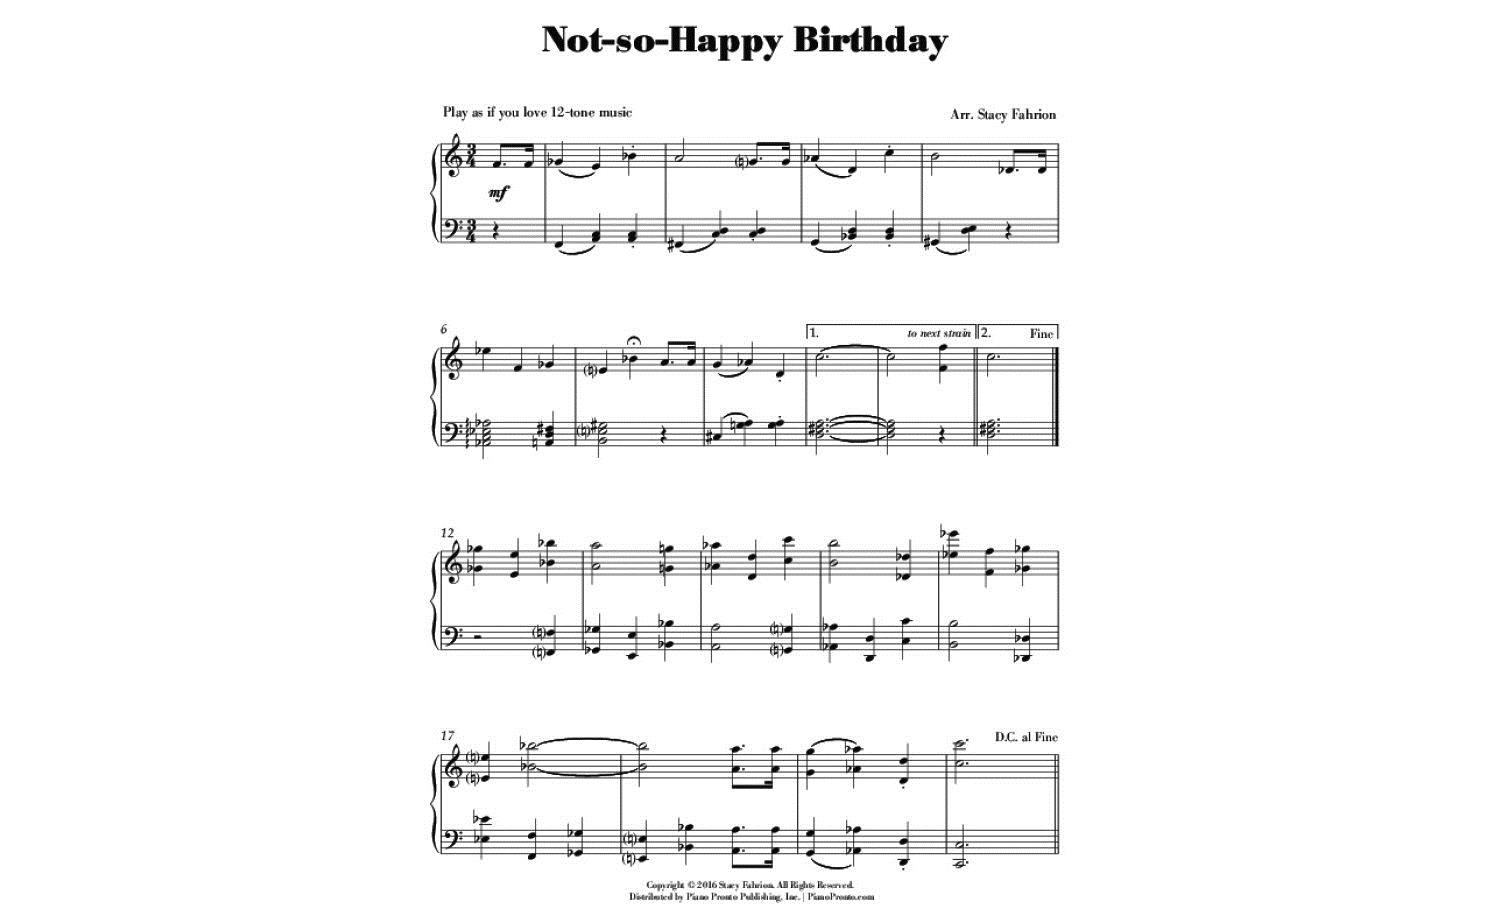 birthday sheet ; PPFAHR1017_Not-so-Happy-Birthday-Fahrion_sample001